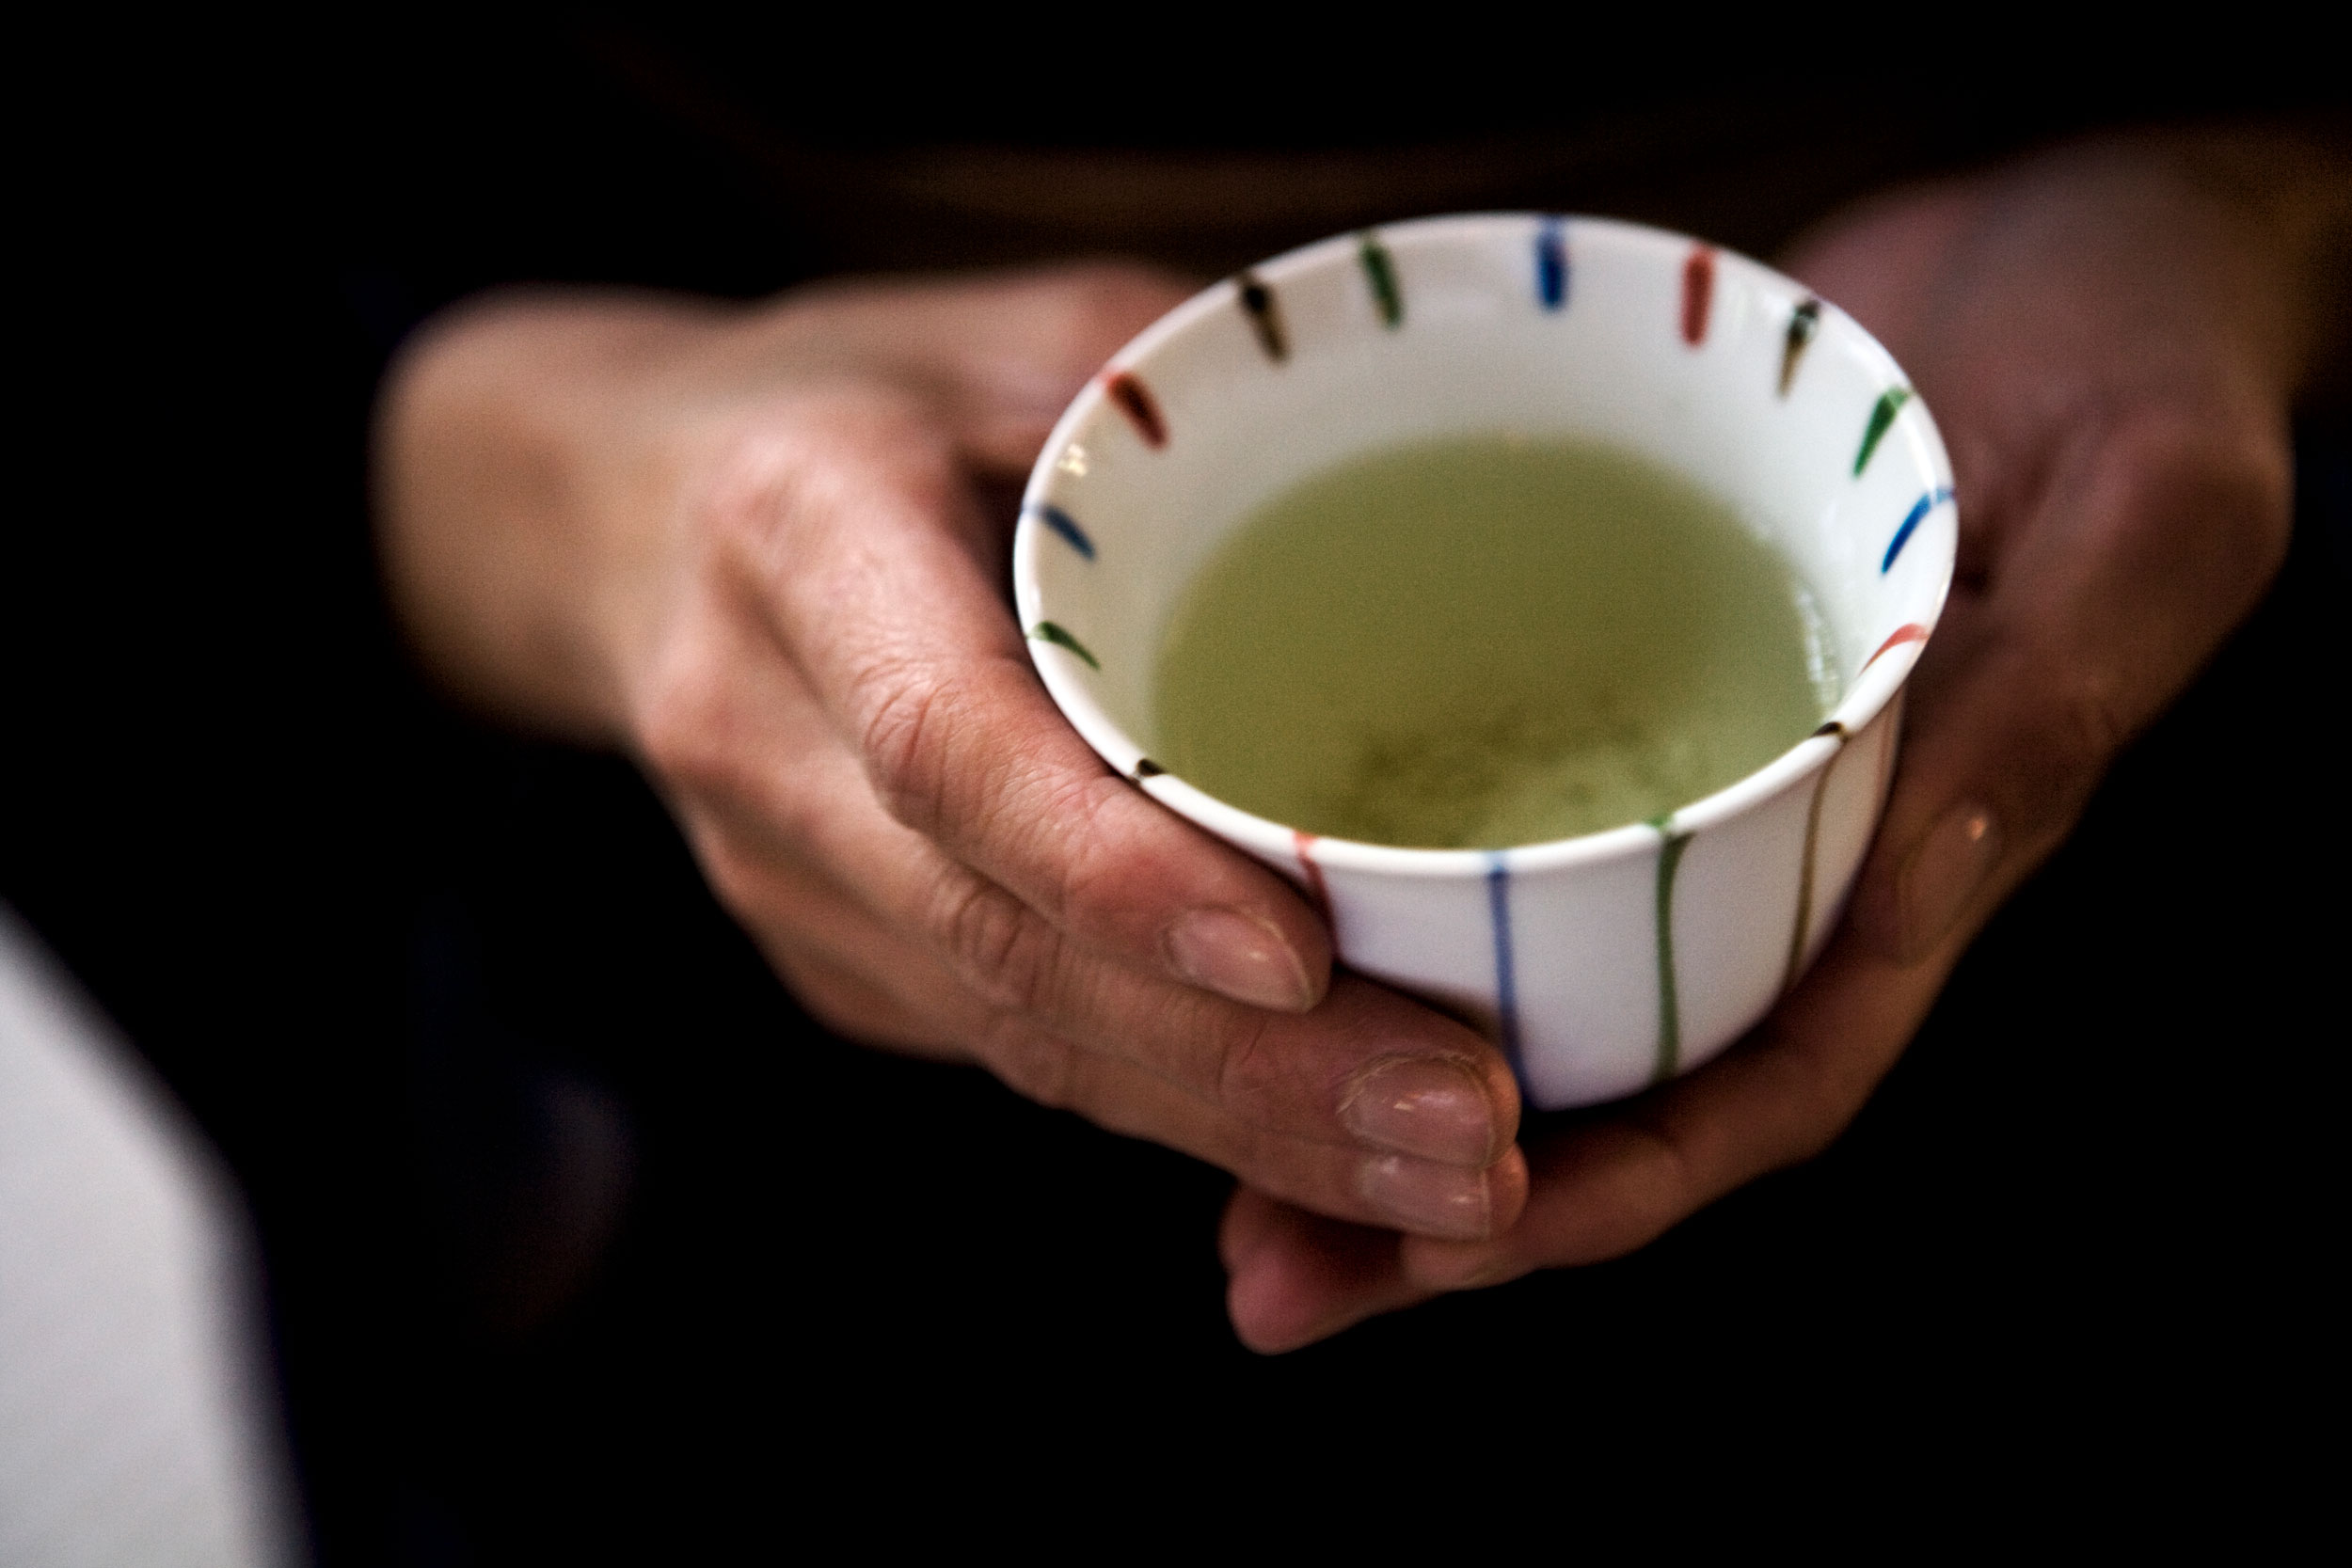 Calm hands holding a small ceramic cup filled with green tea.